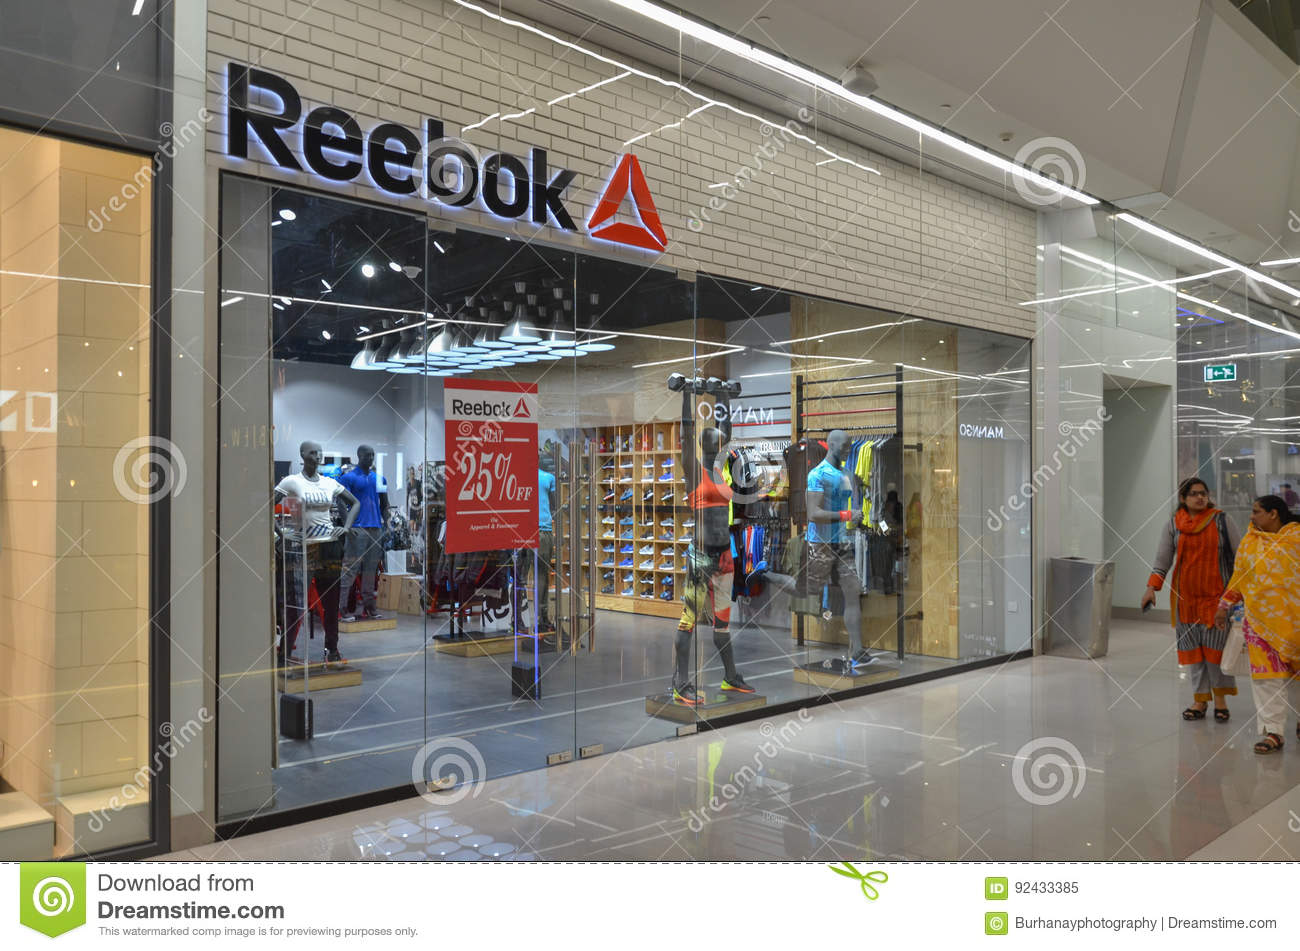 Reebok Shop In Emporium Mall Lahore Pakistan On 6th May